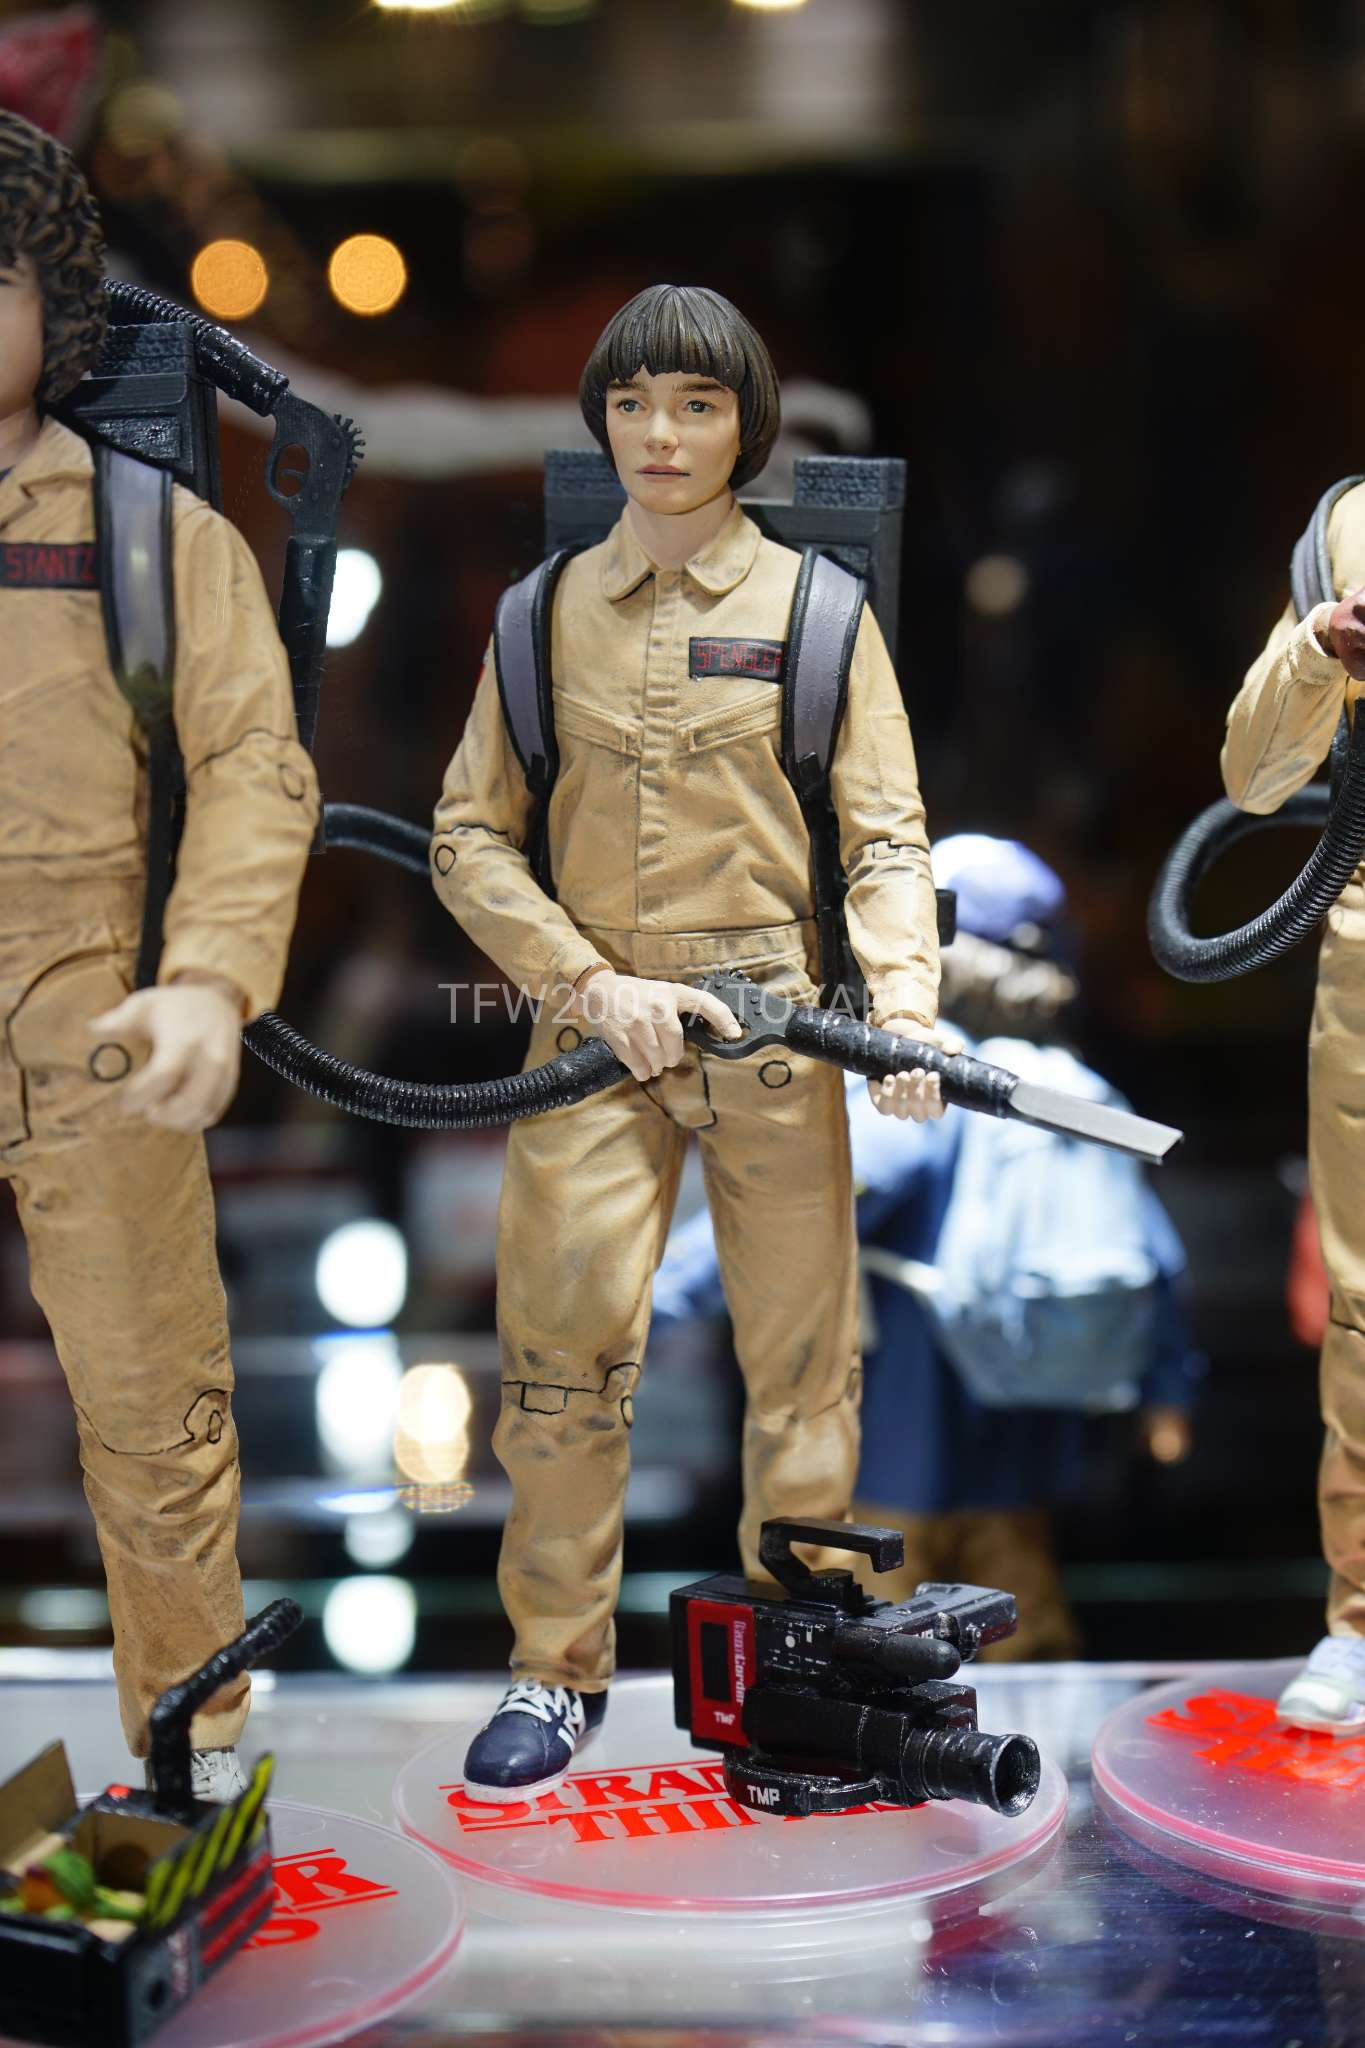 Stranger Things Toys : Toy fair gallery mcfarlane stranger things figures